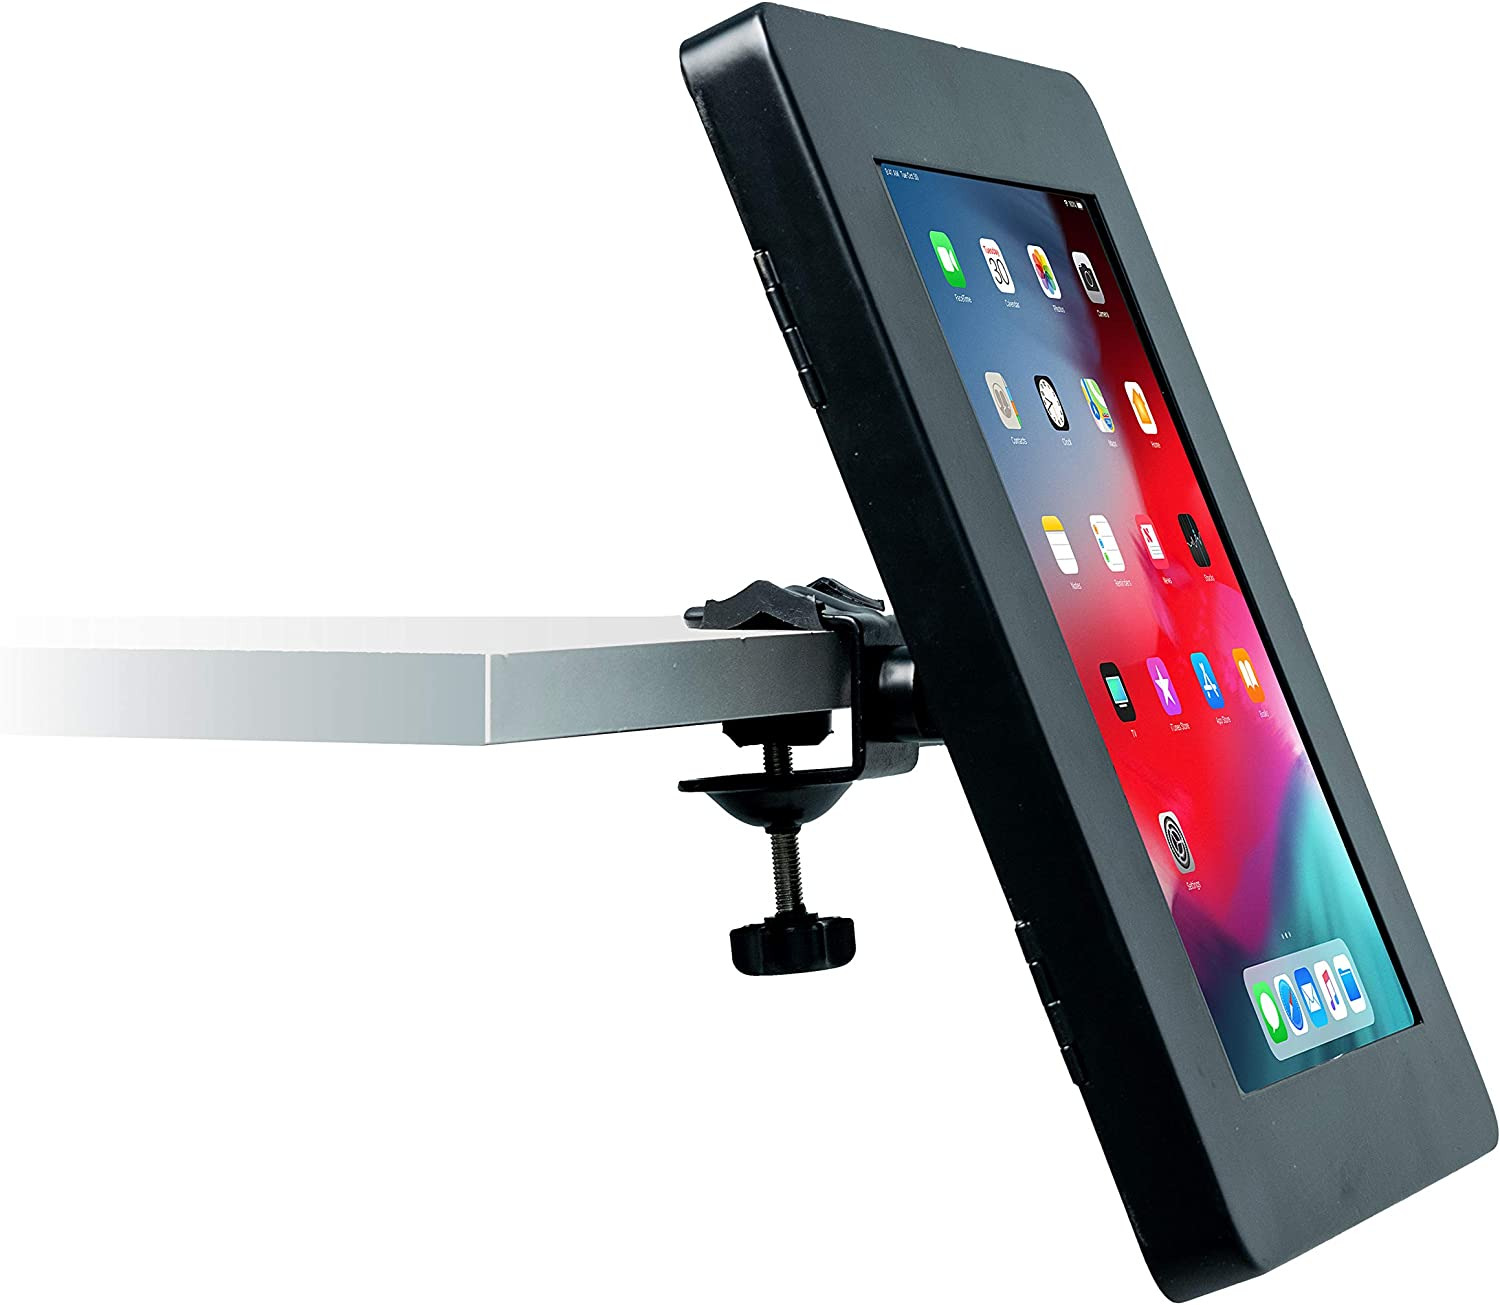 CTA Digital: Premium Locking No-Drill Shelf Mount for iPad 10.2-Inch (7th & 8th Gen.), iPad Air 3, 11-Inch iPad Pro, Galaxy Tab S3, iPad Gen. 6 & 5, and More, Black